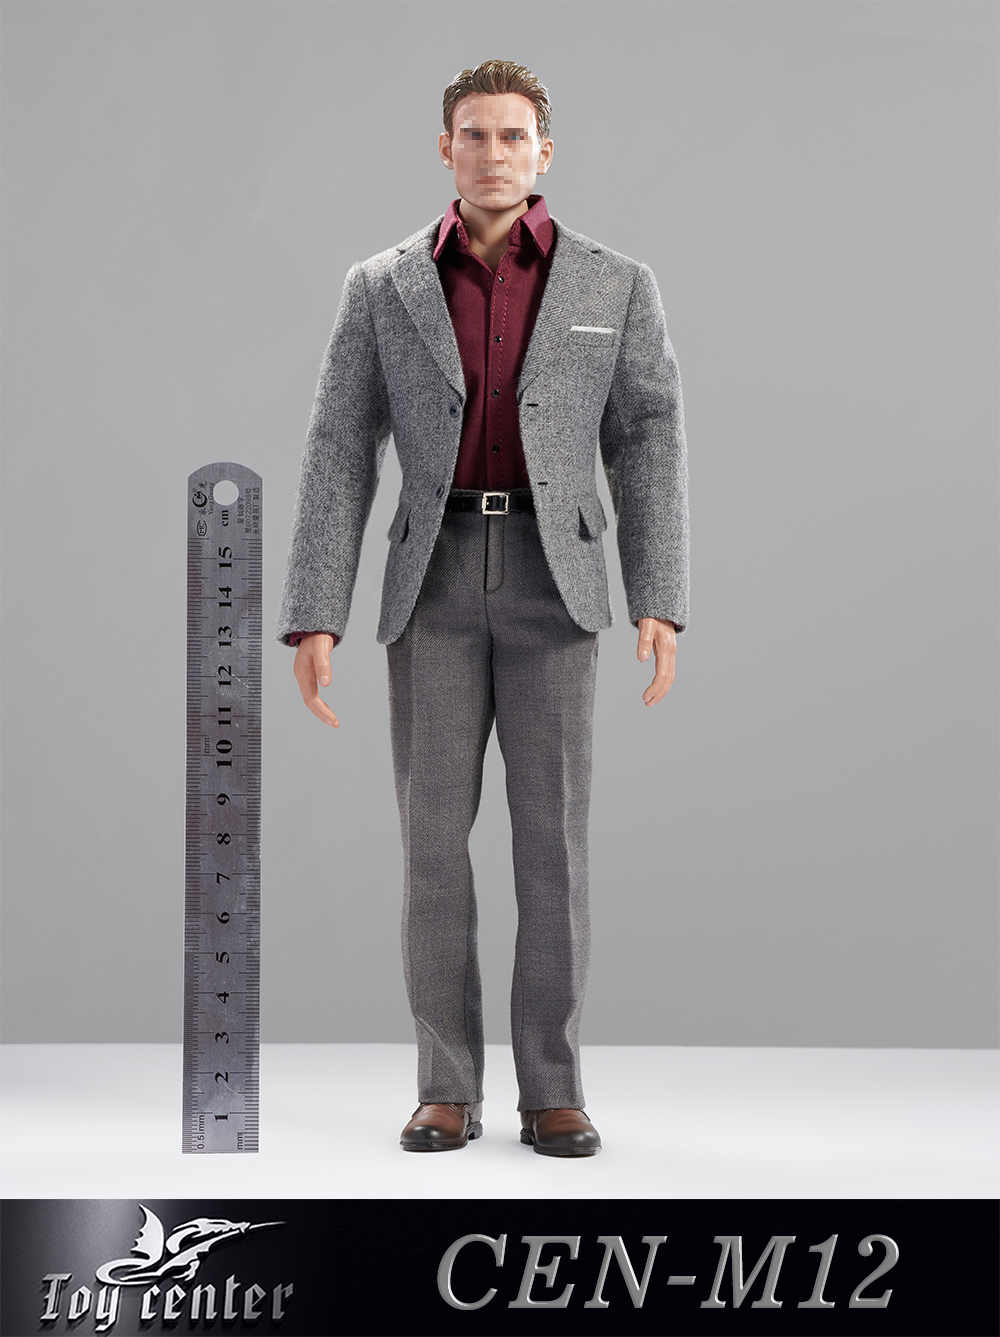 clothes - NEW PRODUCT: Toy center: 1/6 US team old casual suit CEN-M12# 16064611